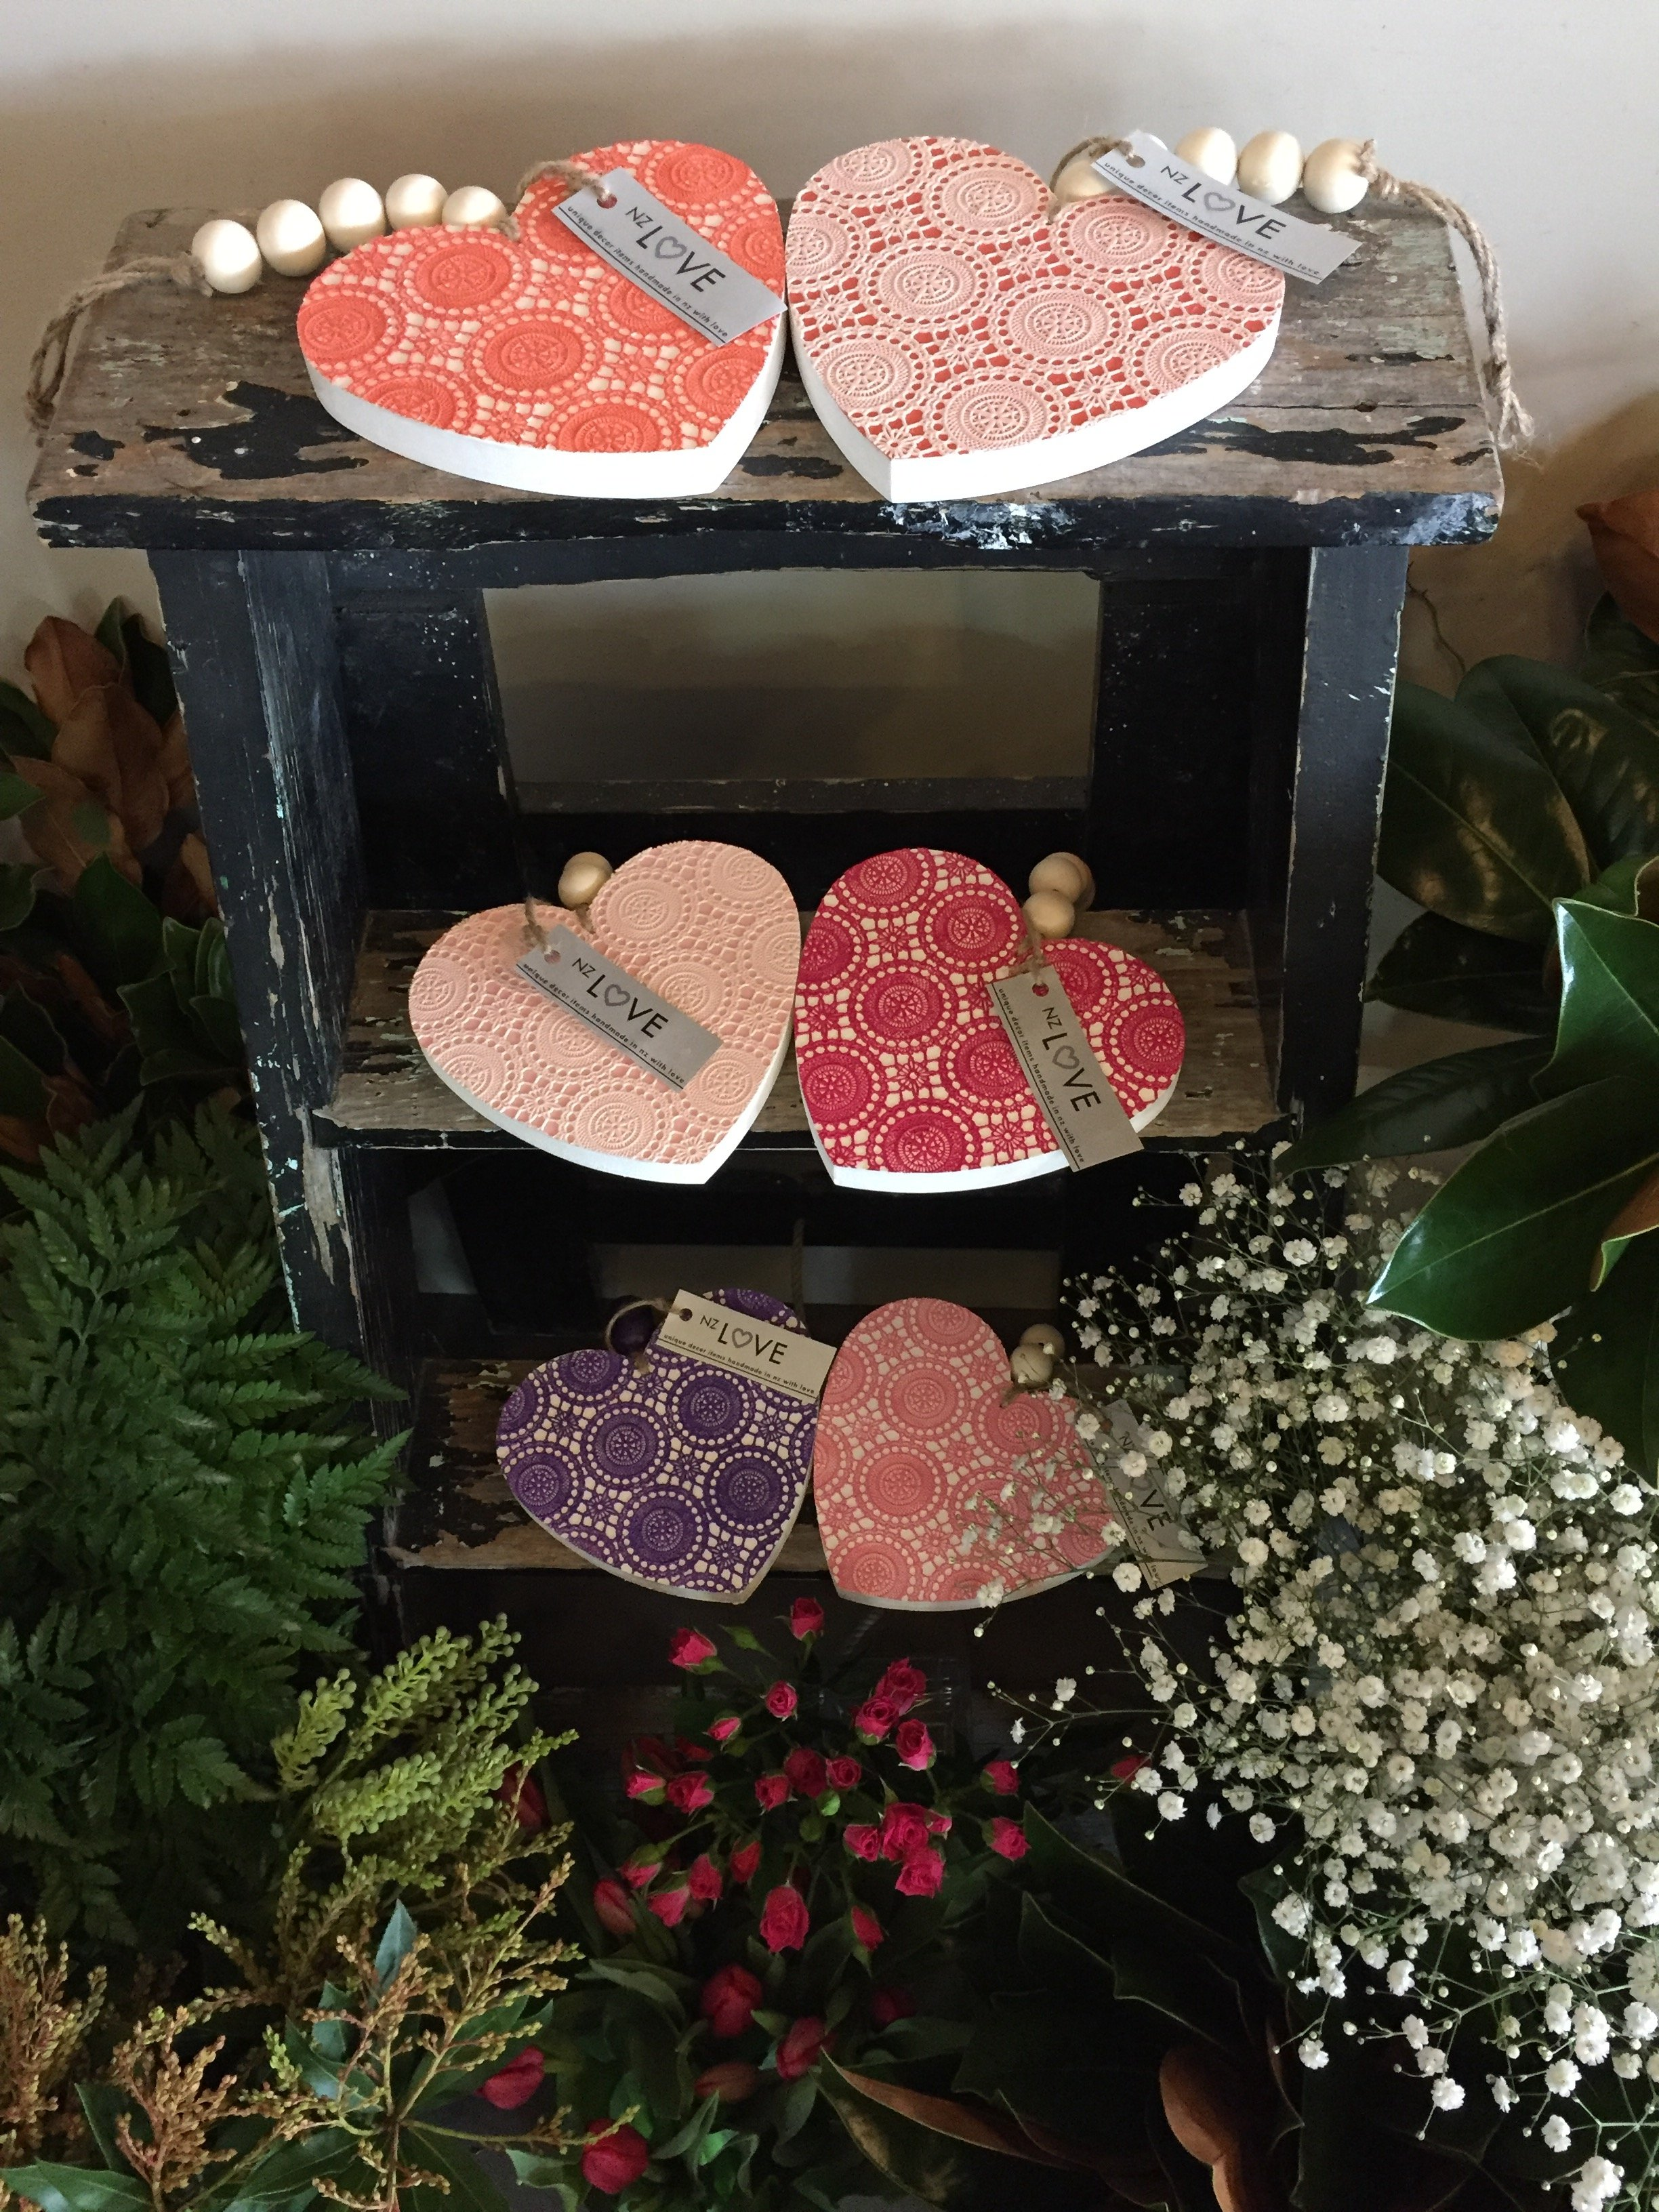 Heart shapped gift boxes